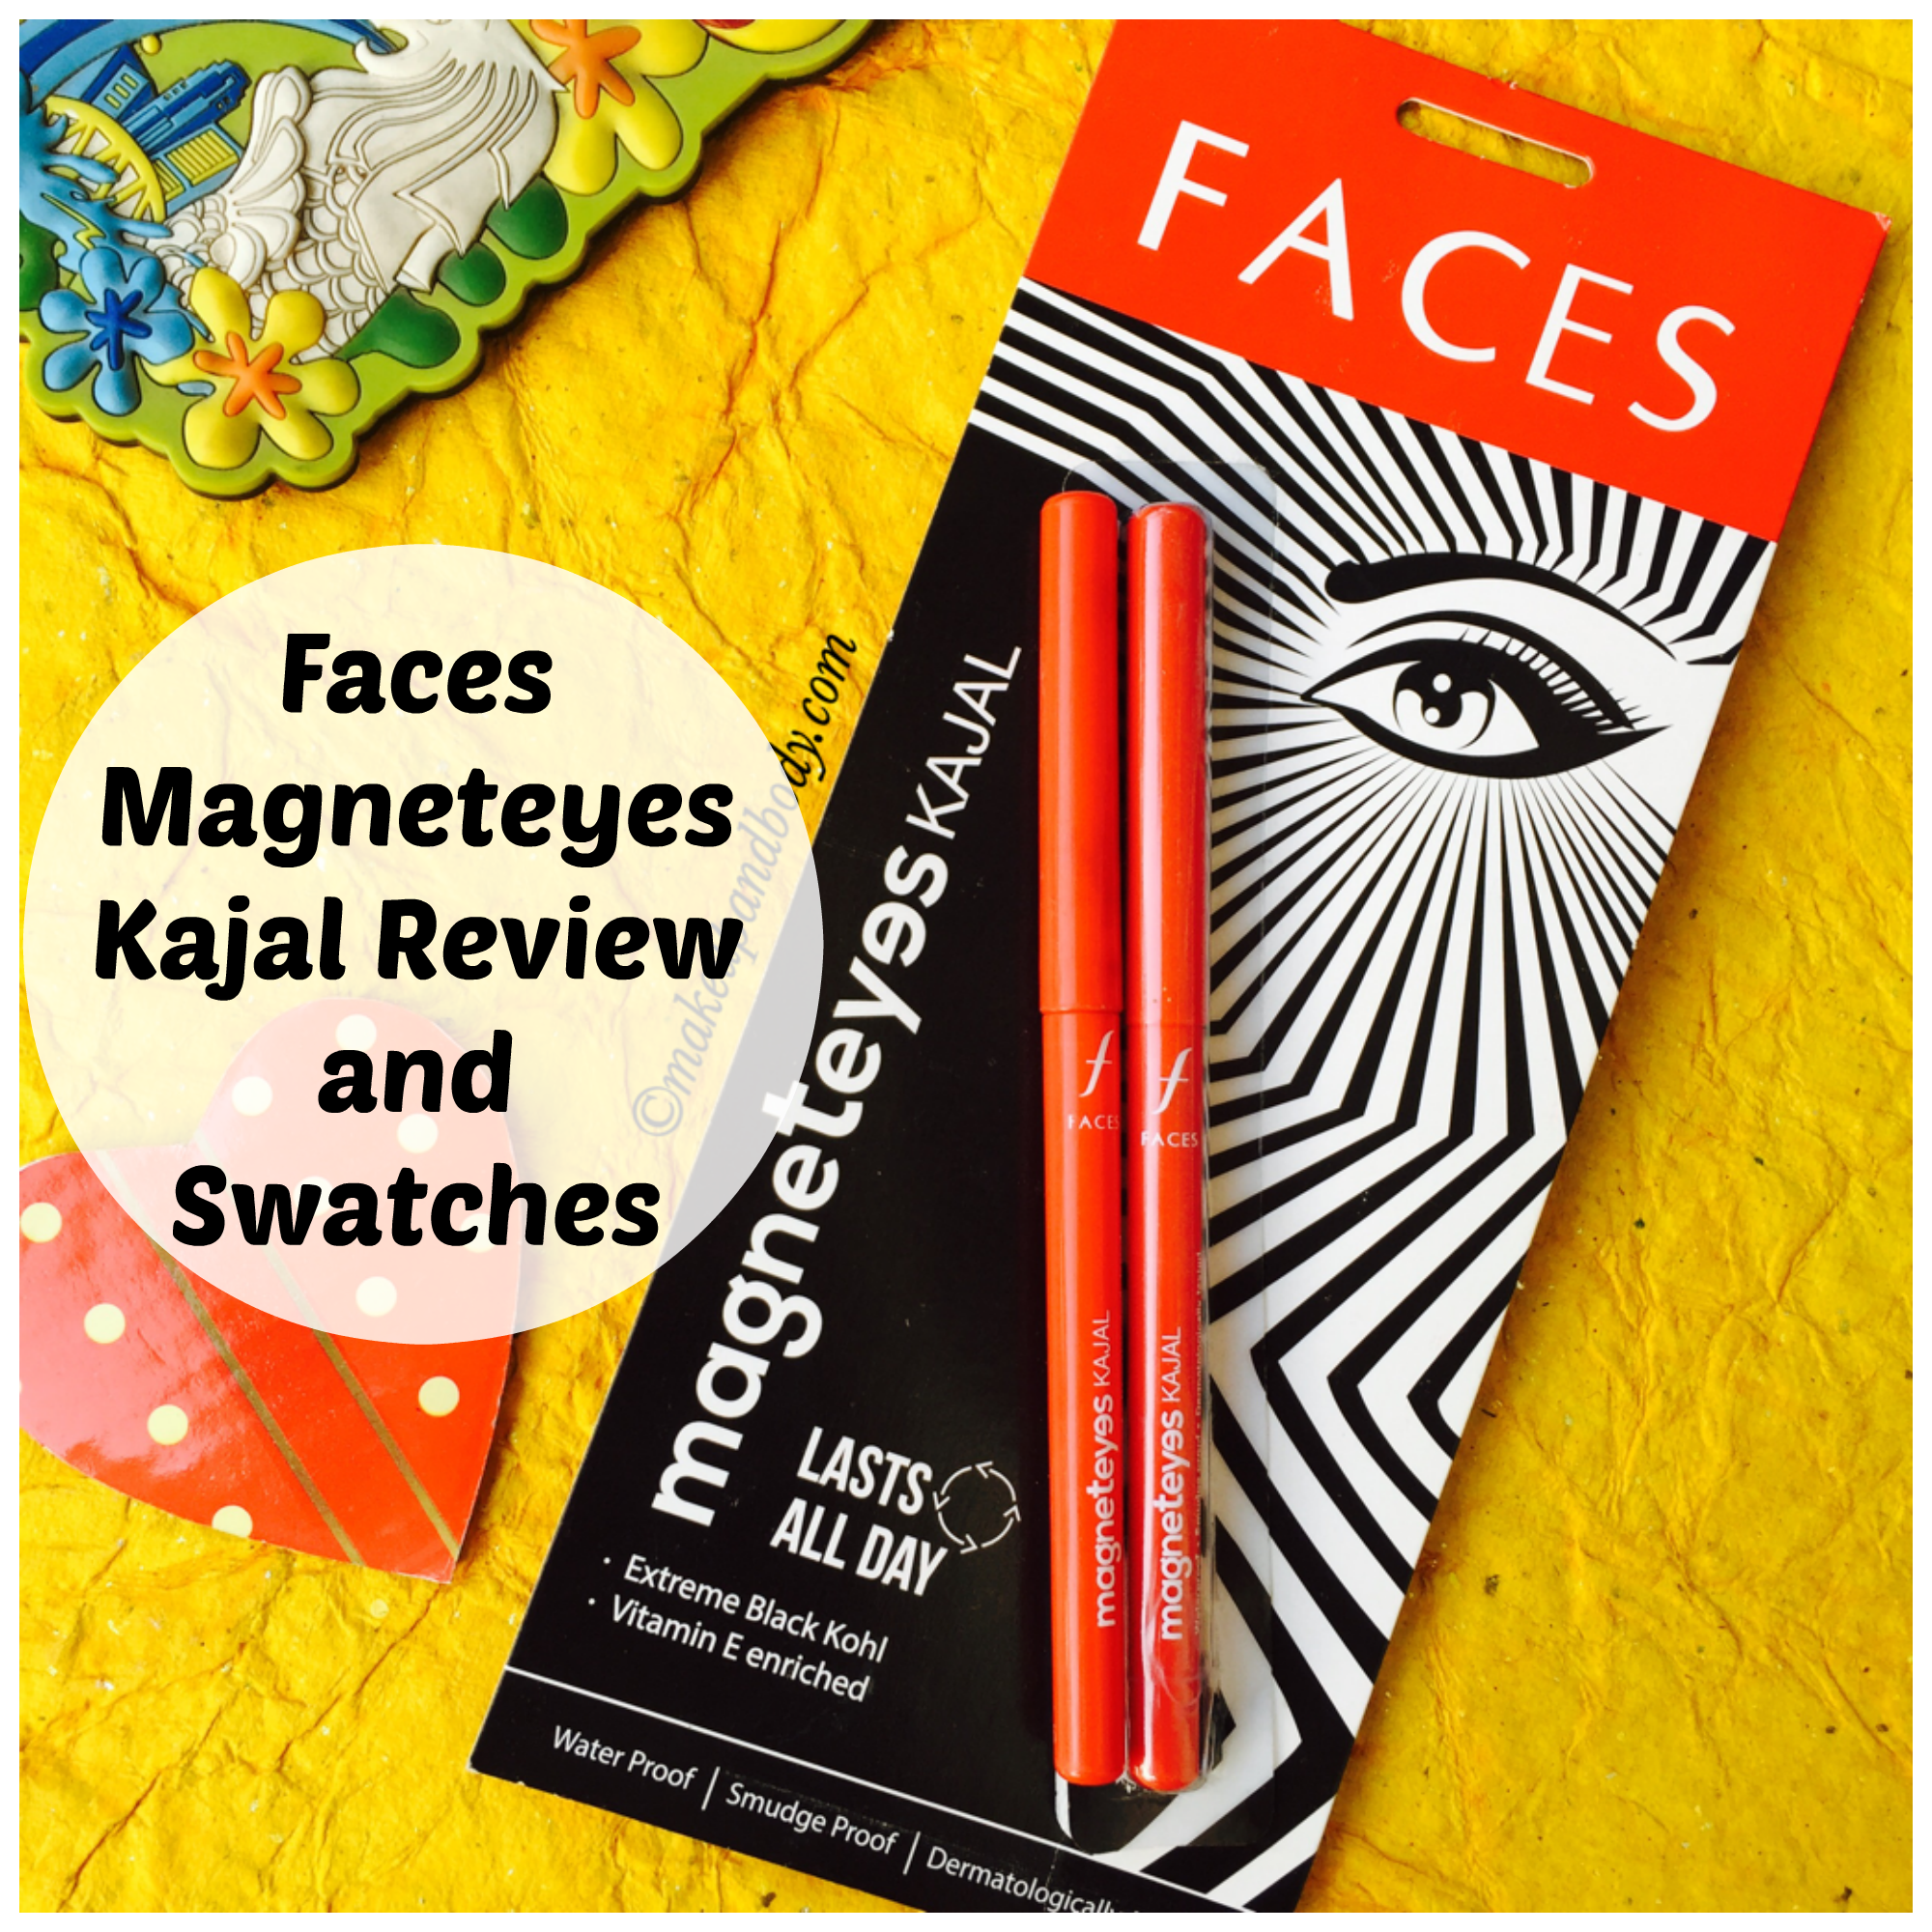 Faces Canada Magneteyes Kajal Review and Swatches